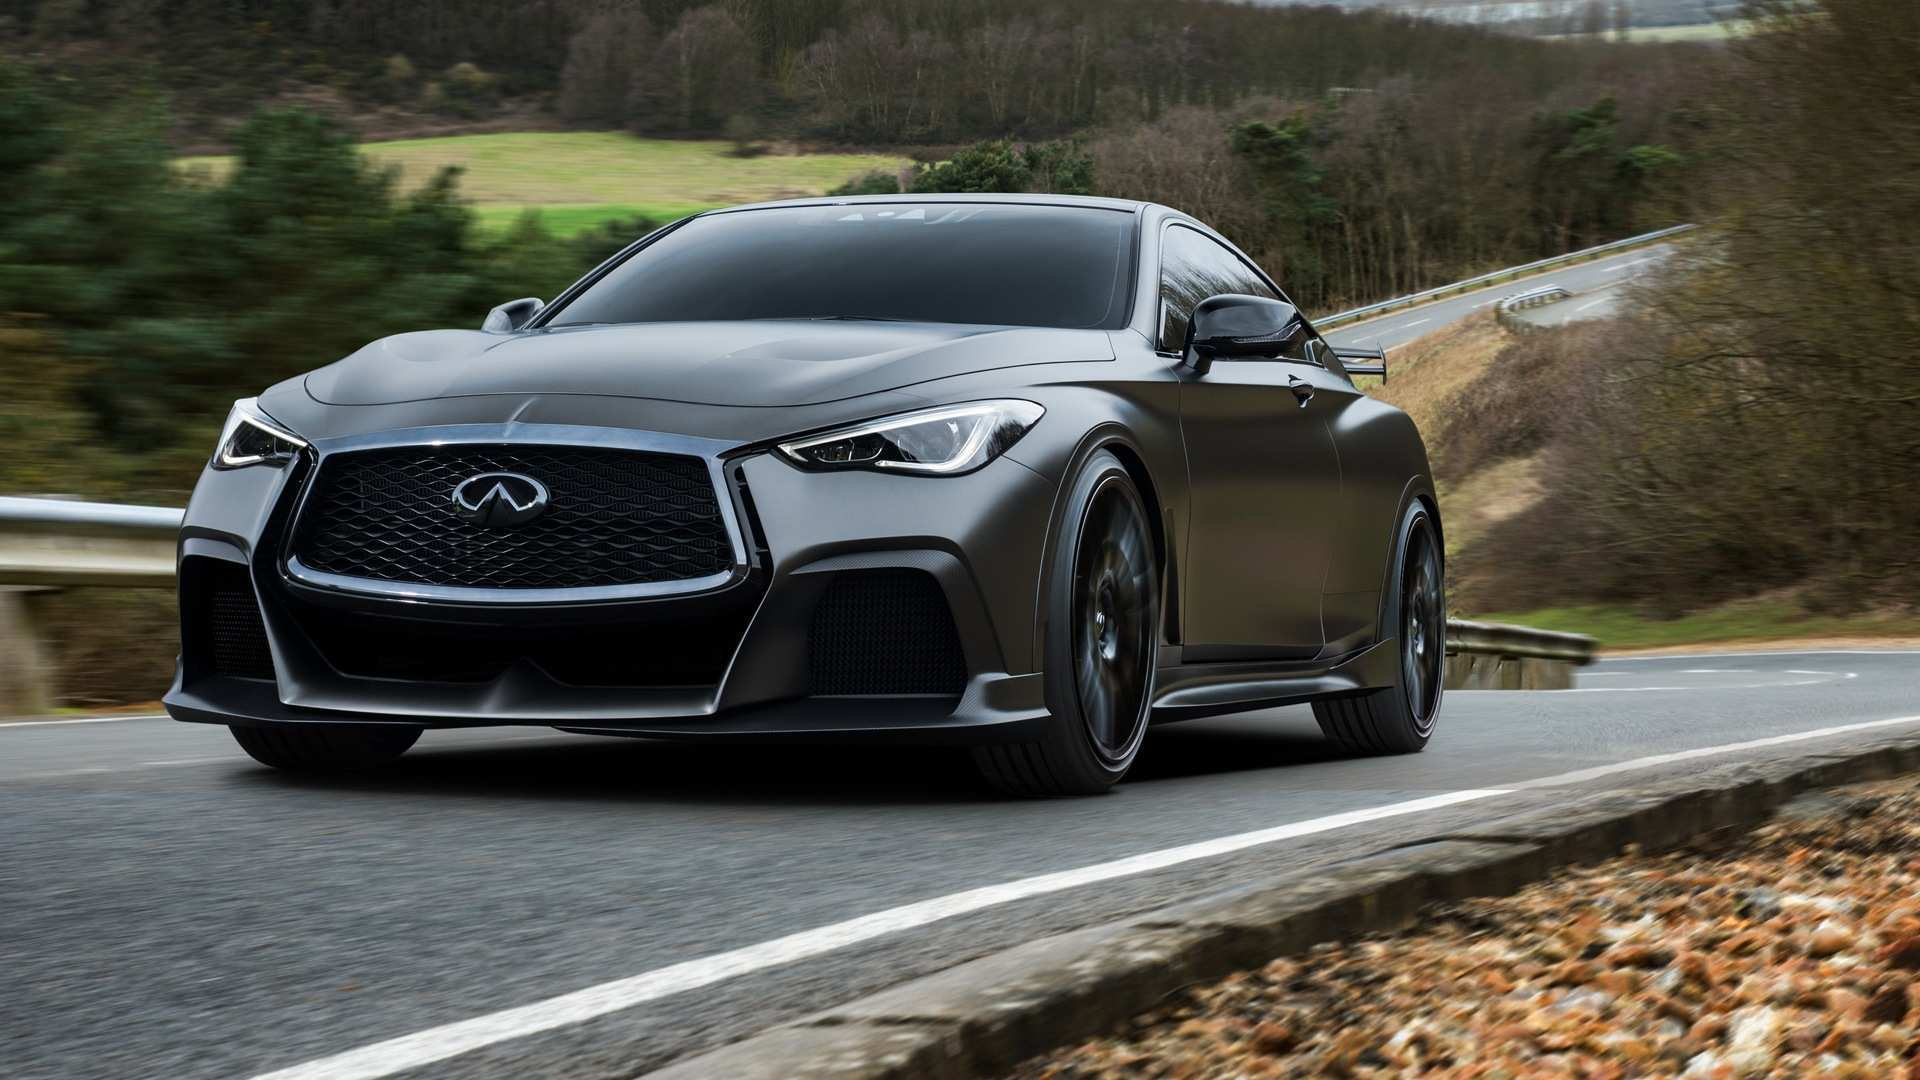 67 The 2020 Infiniti Q60 Coupe Performance and New Engine for 2020 Infiniti Q60 Coupe